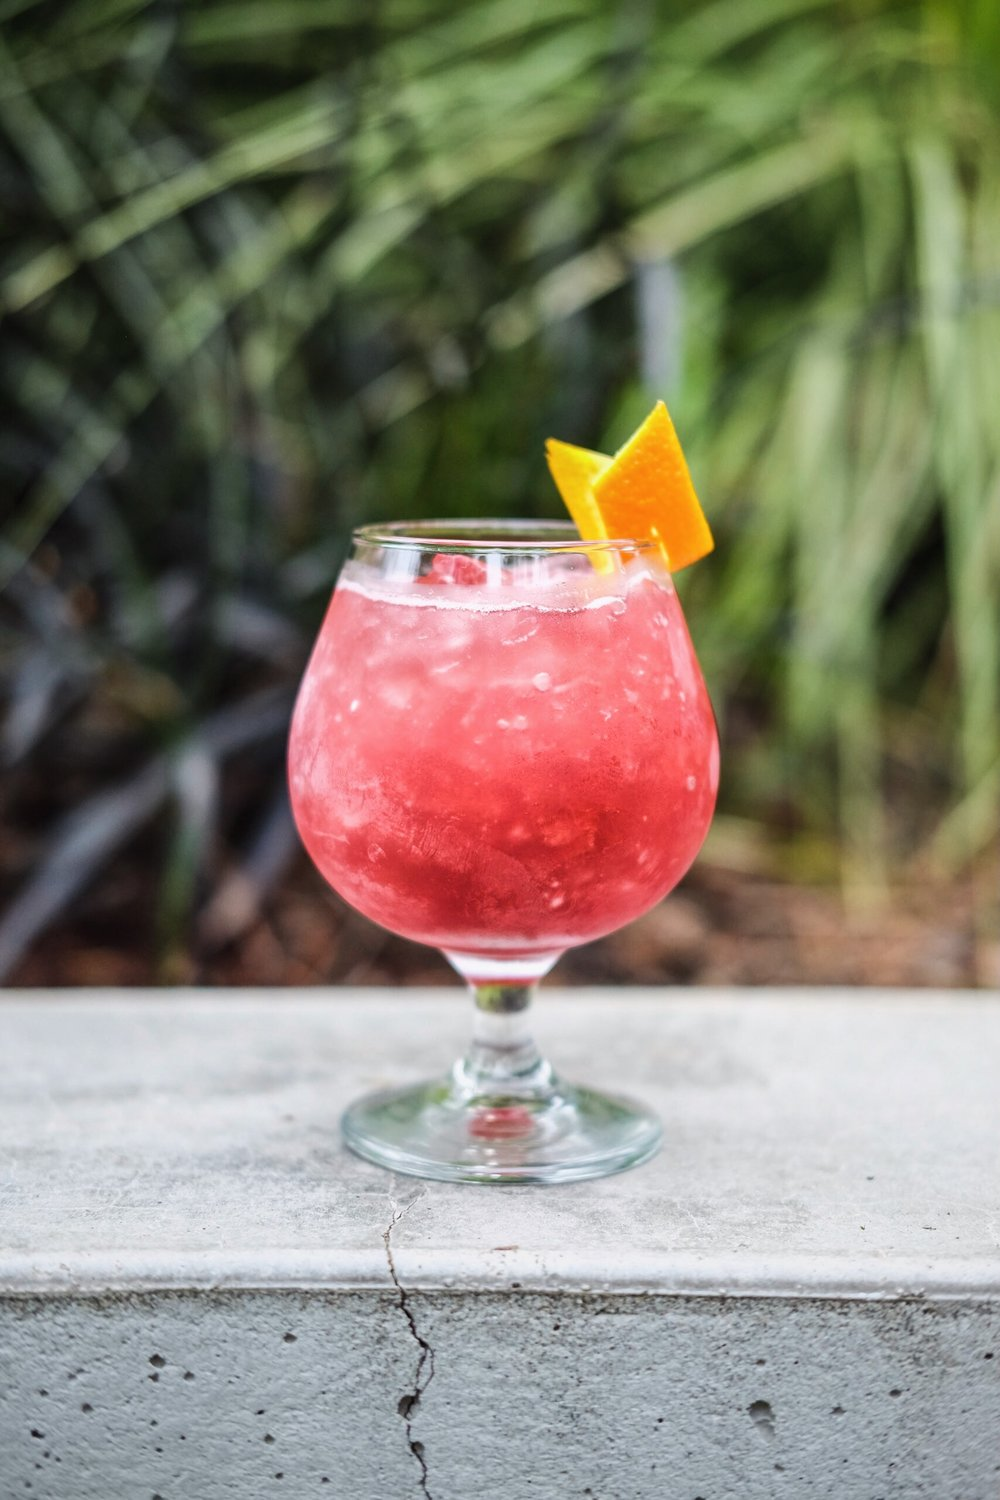 Pacific Sunset - 1oz Cranberry-infused vodka1oz apple brandy¾ oz fresh orange juice½ oz cinnamon syrupsplash of soda